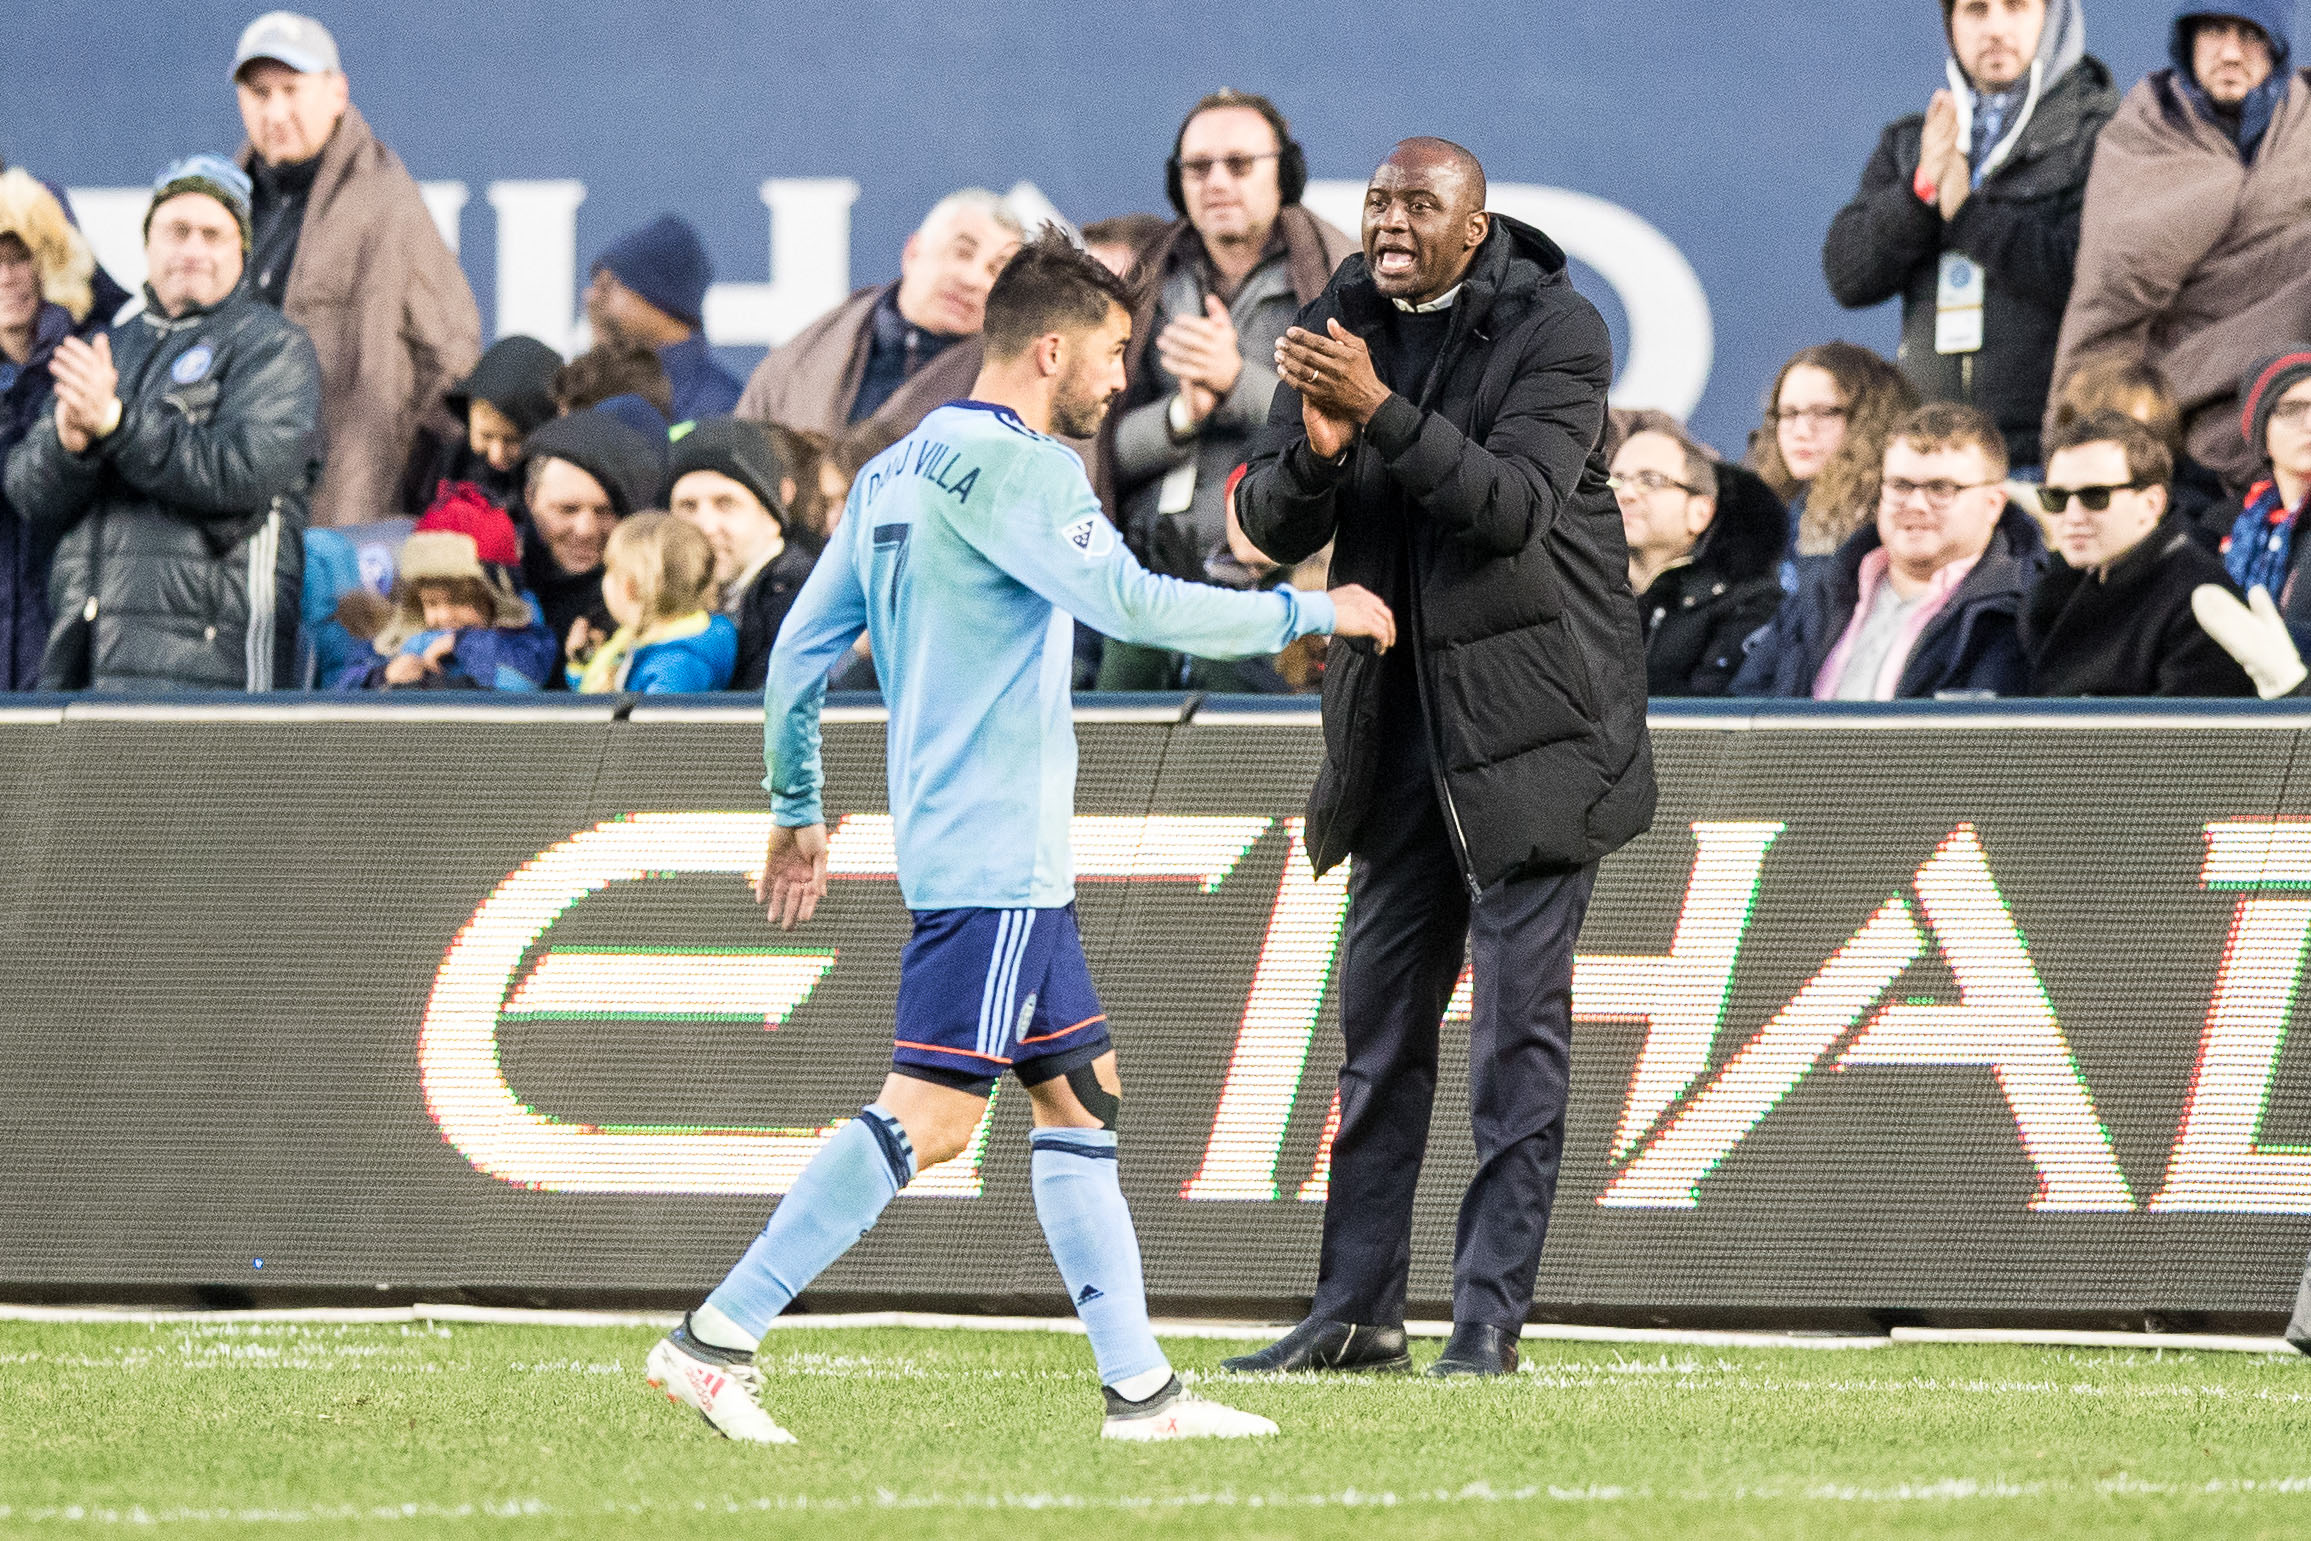 Mar 11, 2018; New York, NY, USA; New York City head coach Patrick Vieira  claps as forward David Villa (7) subs out against the Los Angeles Galaxy during the second half at Yankee Stadium. Mandatory Credit: Vincent Carchietta-USA TODAY Sports